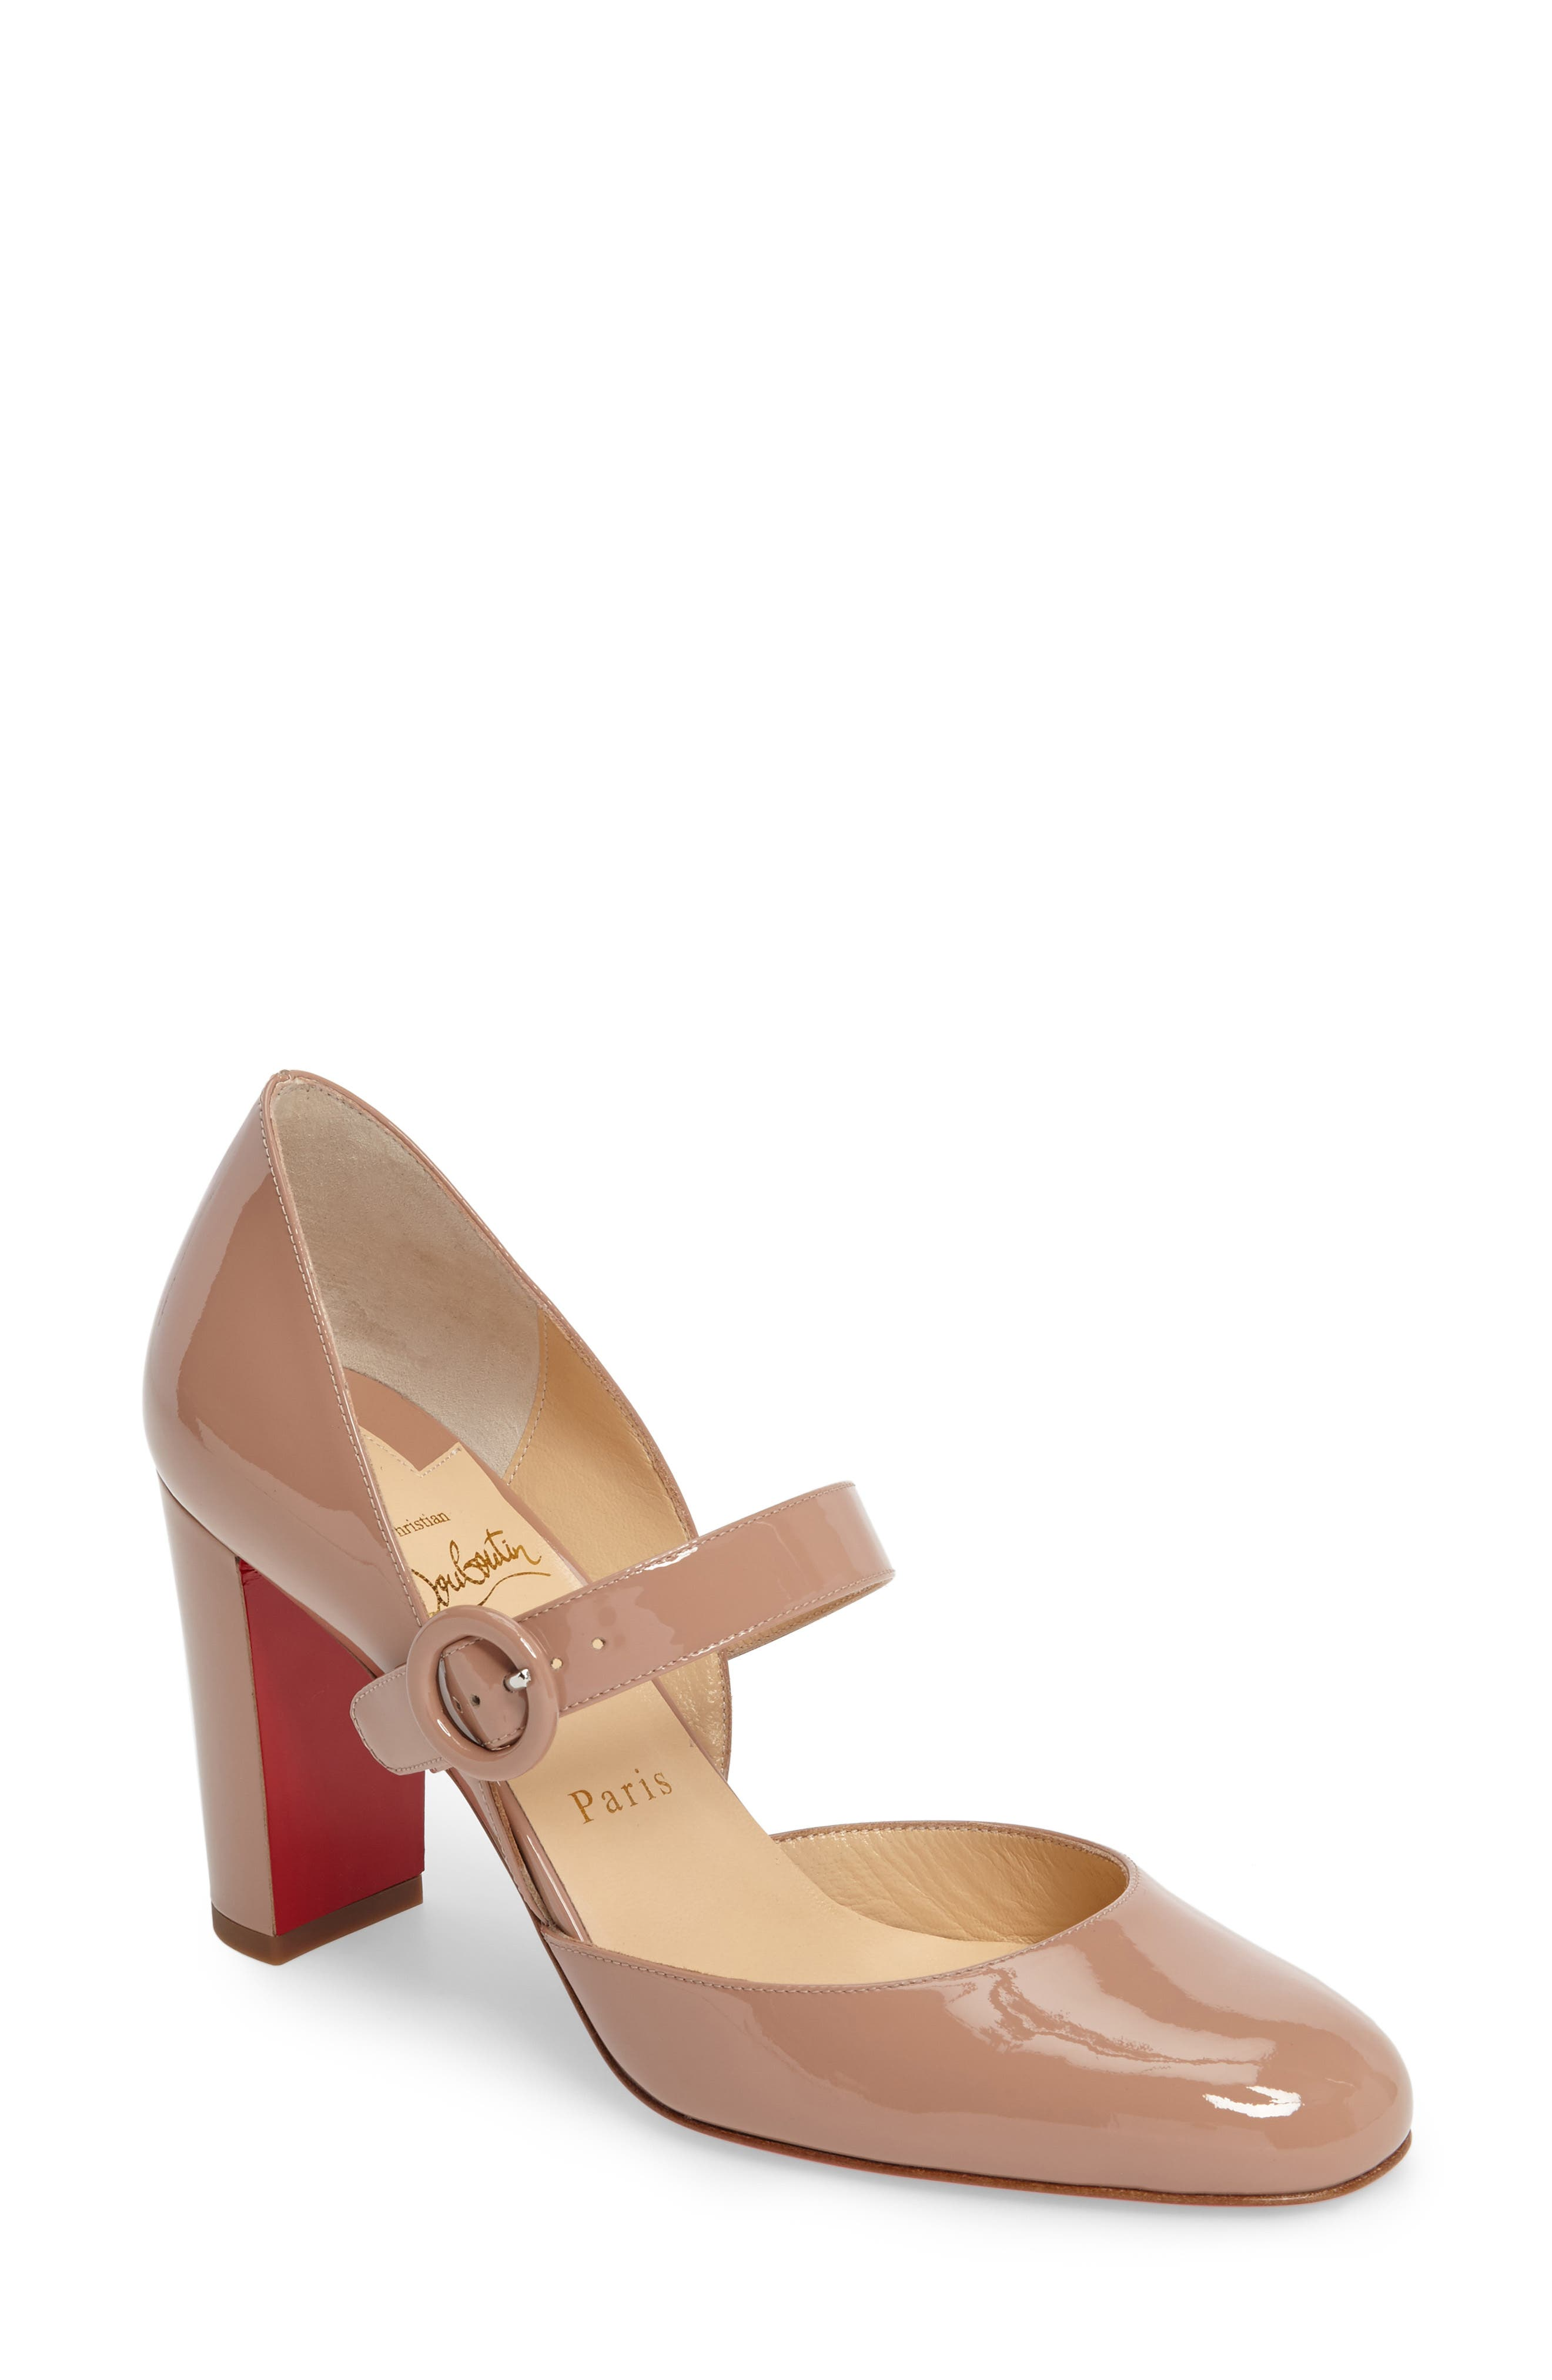 Alternate Image 1 Selected - Christian Louboutin Miss Kawa Mary Jane Pump